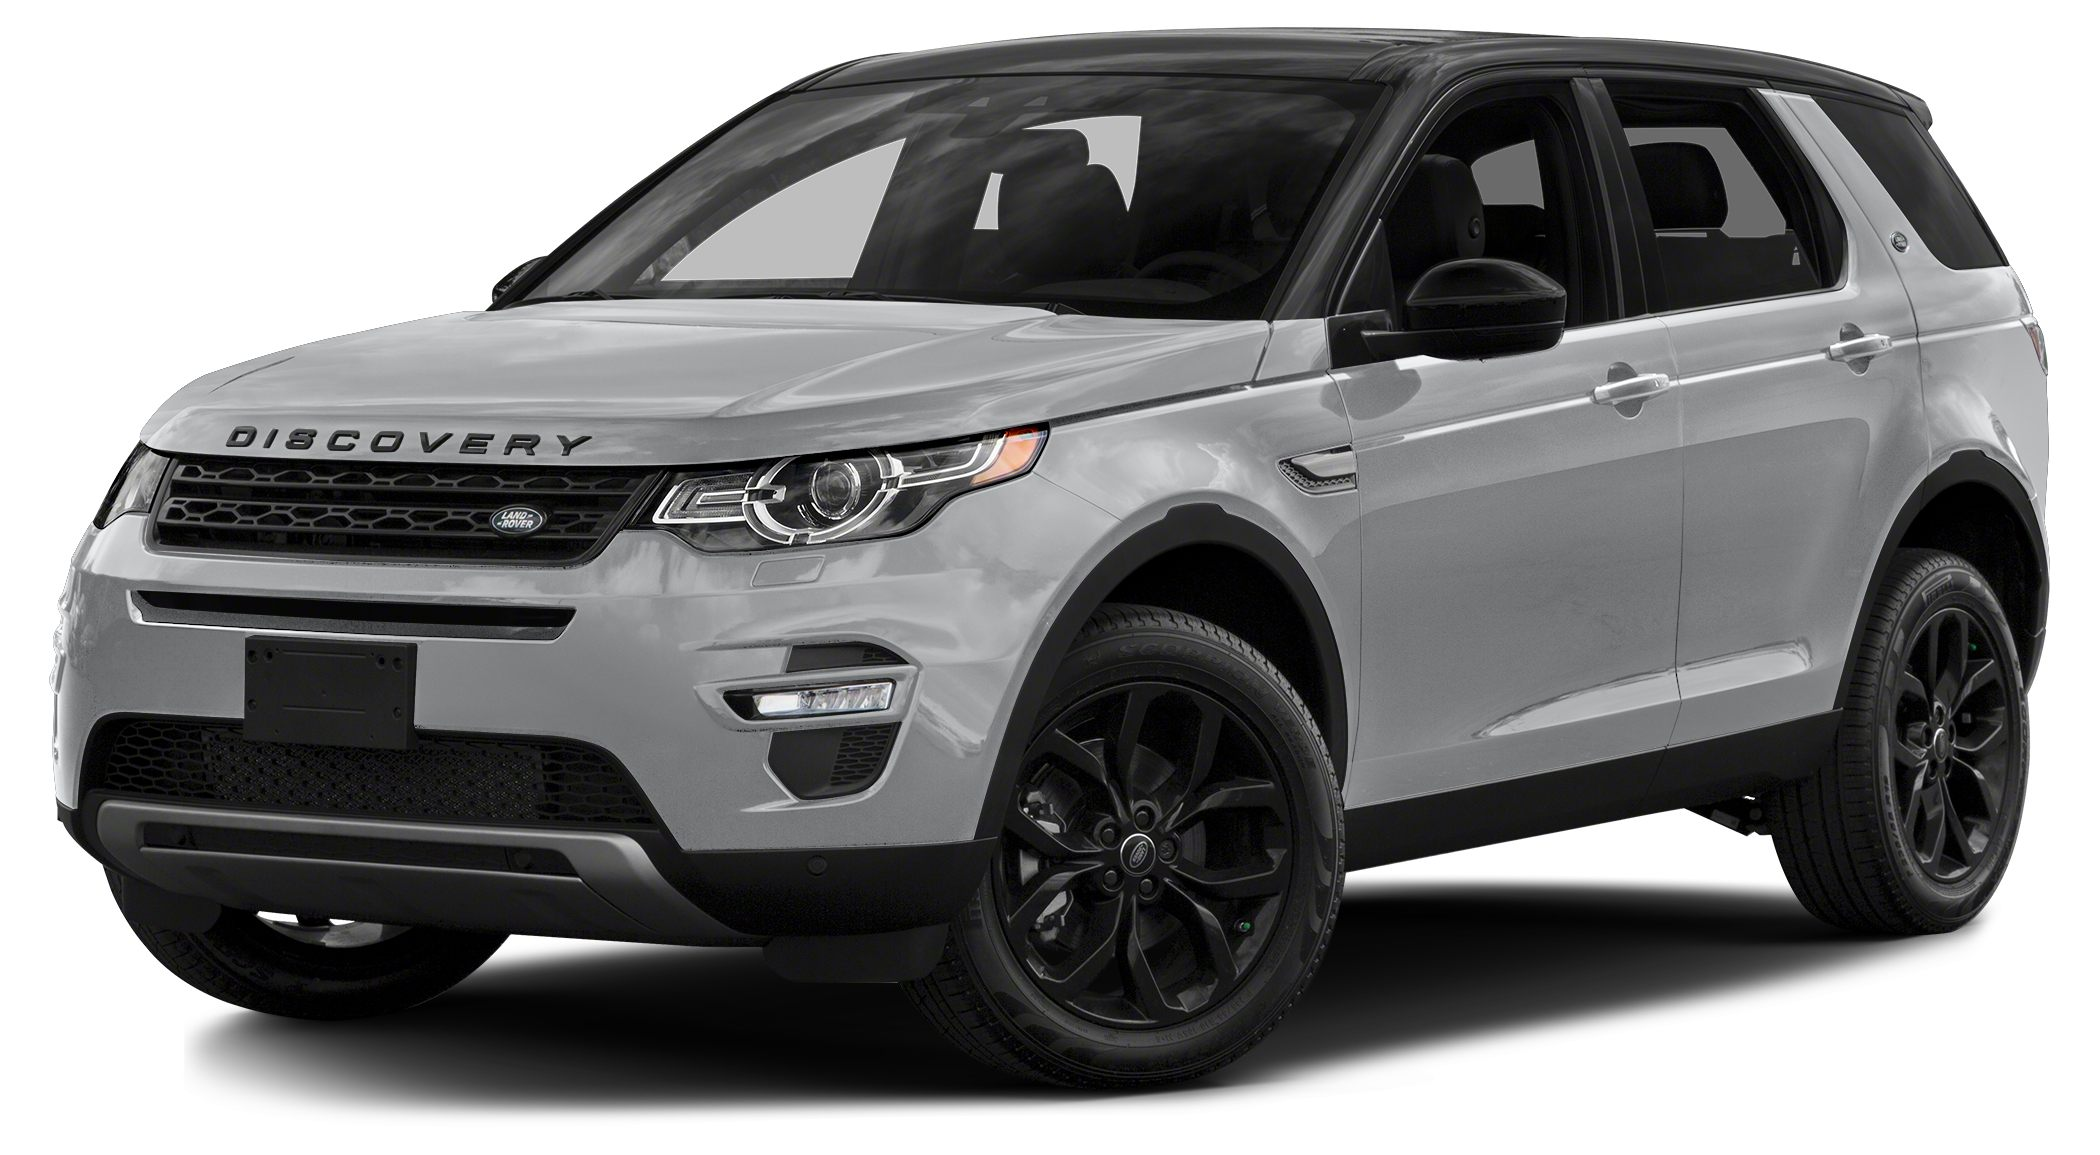 Land Rover Discovery 4wd In California For Sale ▷ Used Cars